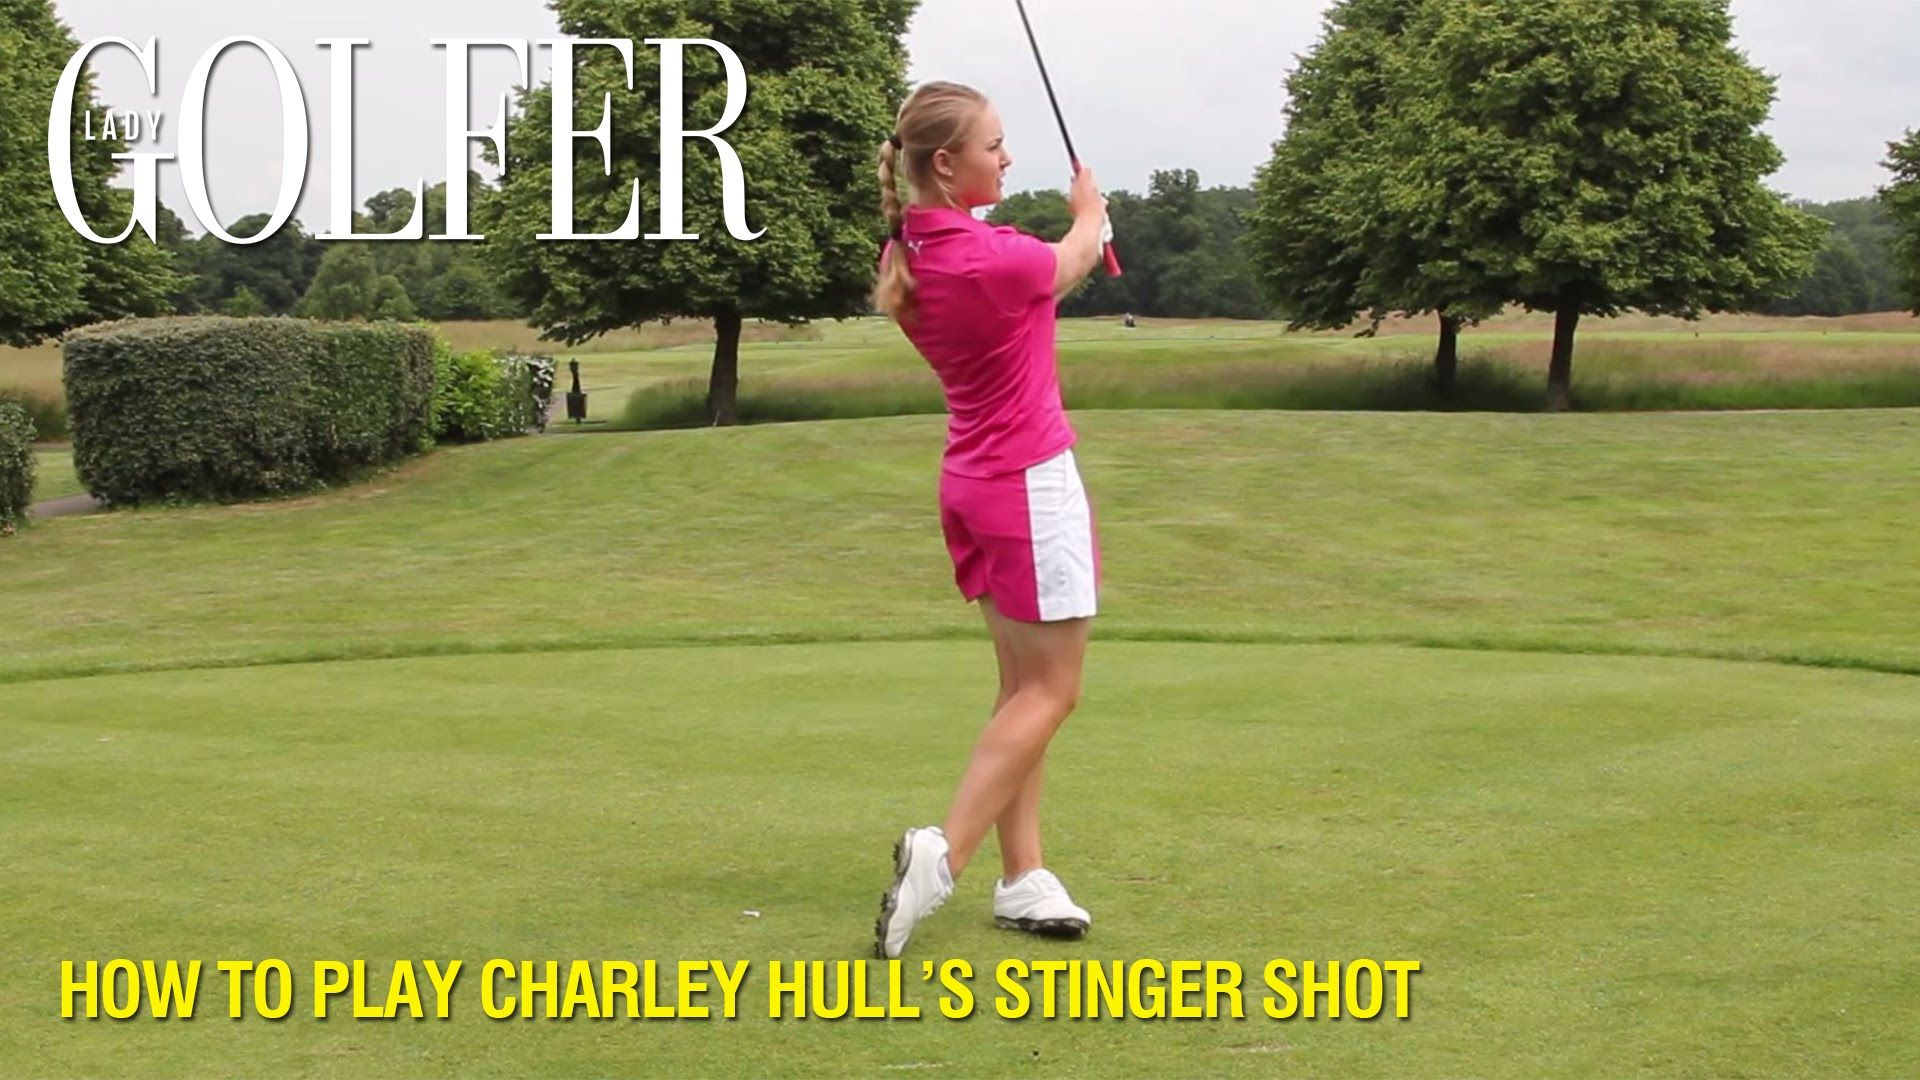 Recent first-time LPGA Tour winner Charley Hull demonstrates how she hits a Stinger shot for this #TipTuesday #GolfTip #Golf #GolfCollege